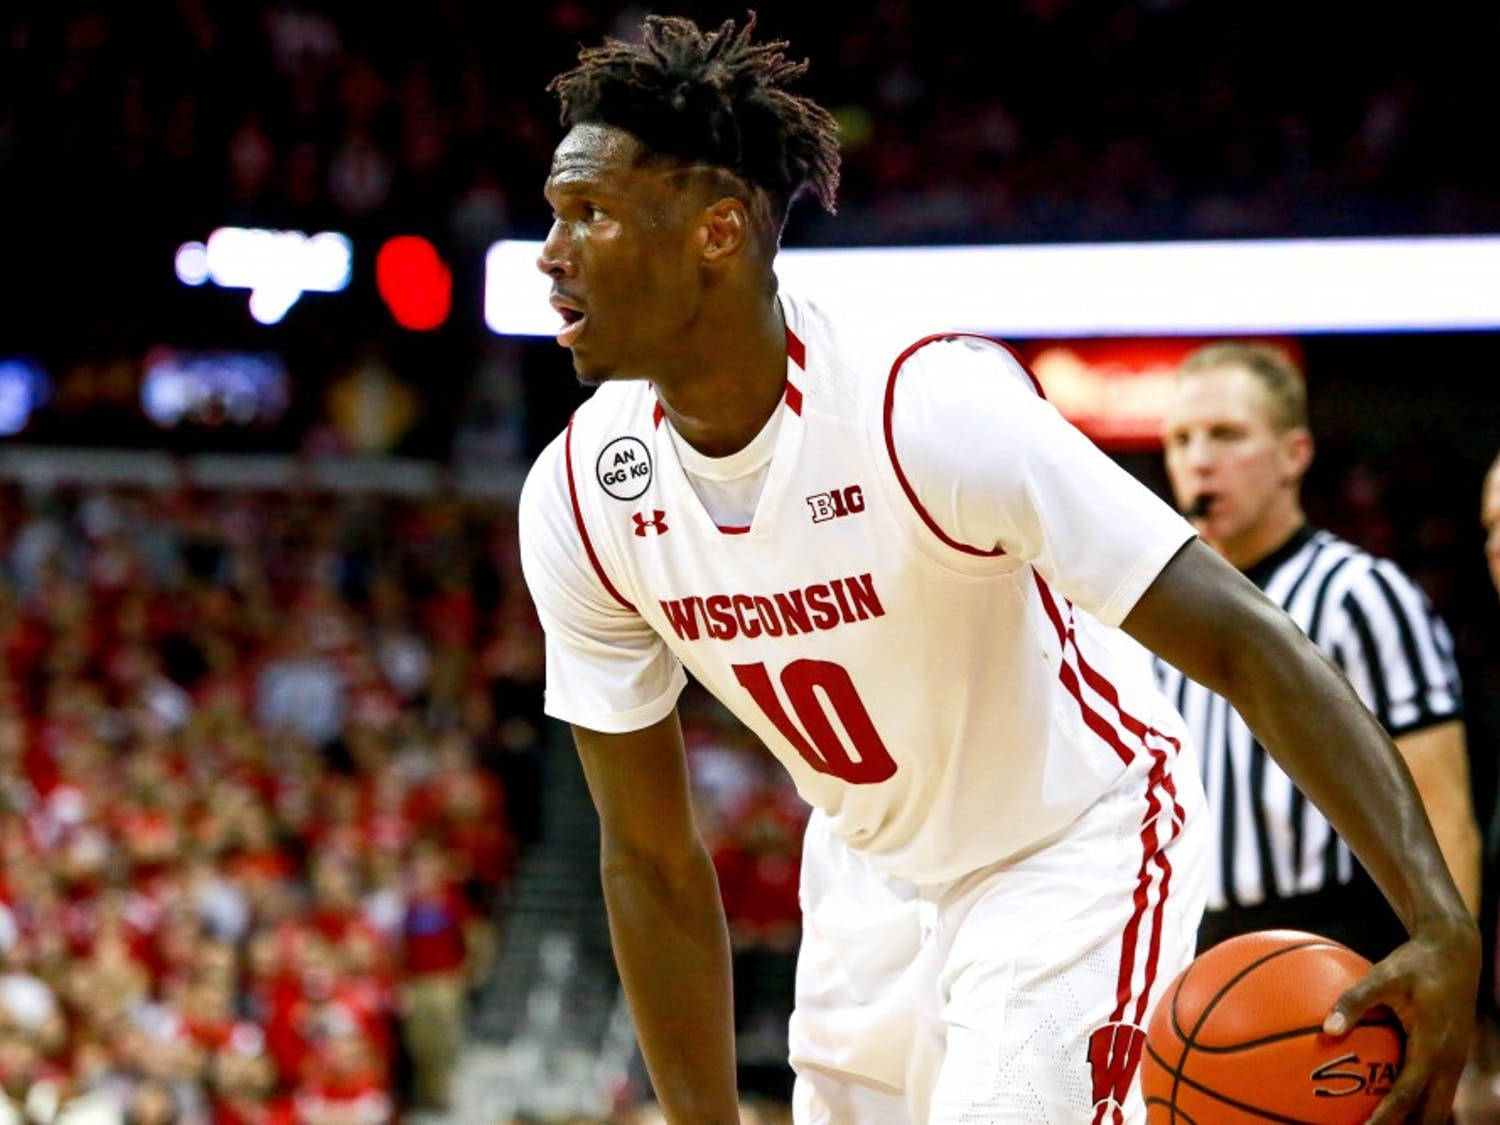 Nigel Hayes and the Badgers may have finally broken out of their slump in the second half against Maryland Sunday.